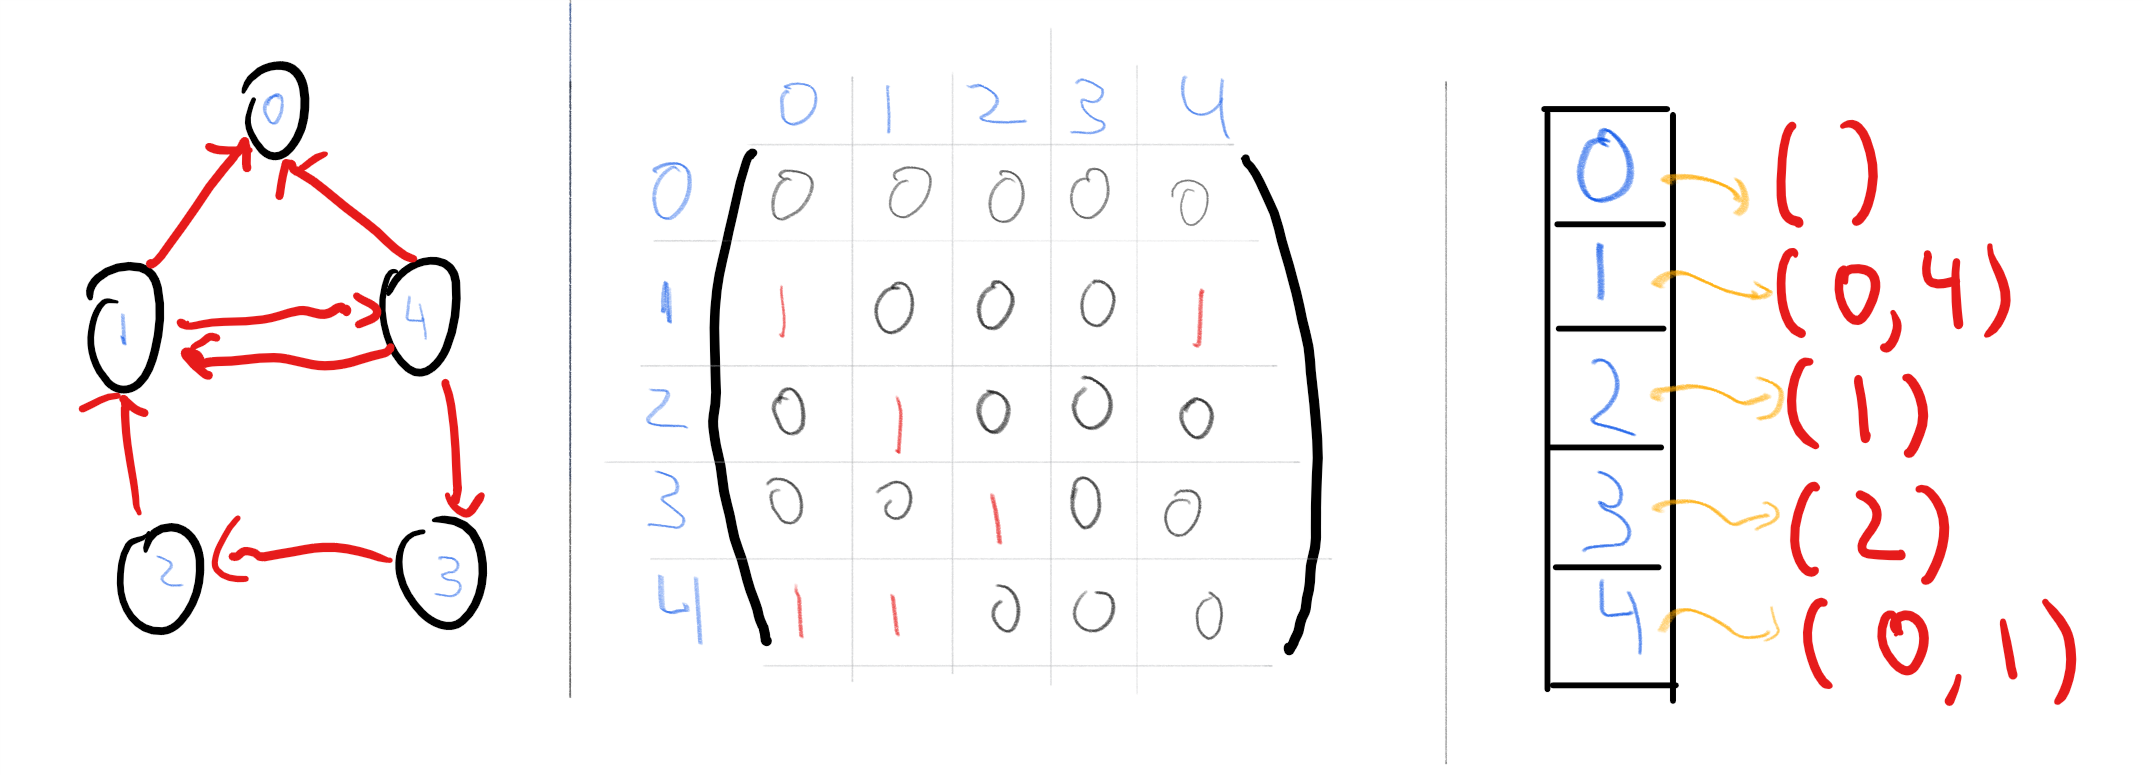 Representing the graph G=(\{0,1,2,3,4\},\{ (1,0),(4,0),(1,4),(4,1),(2,1),(3,2),(4,3) \}) in the adjacency matrix and adjacency list representations.